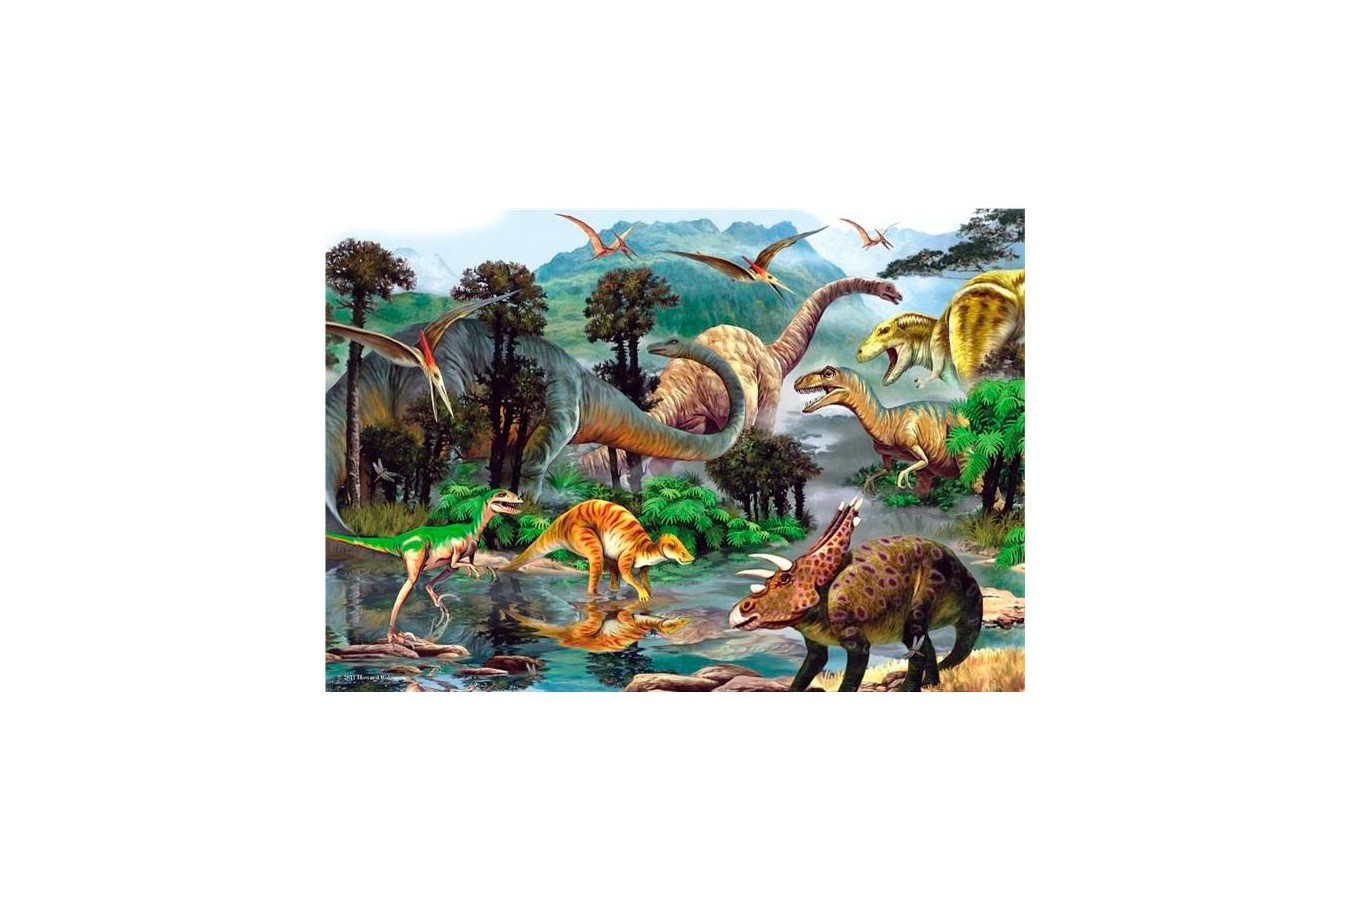 Puzzle Anatolian - Dino Valley II, 260 piese (3288)